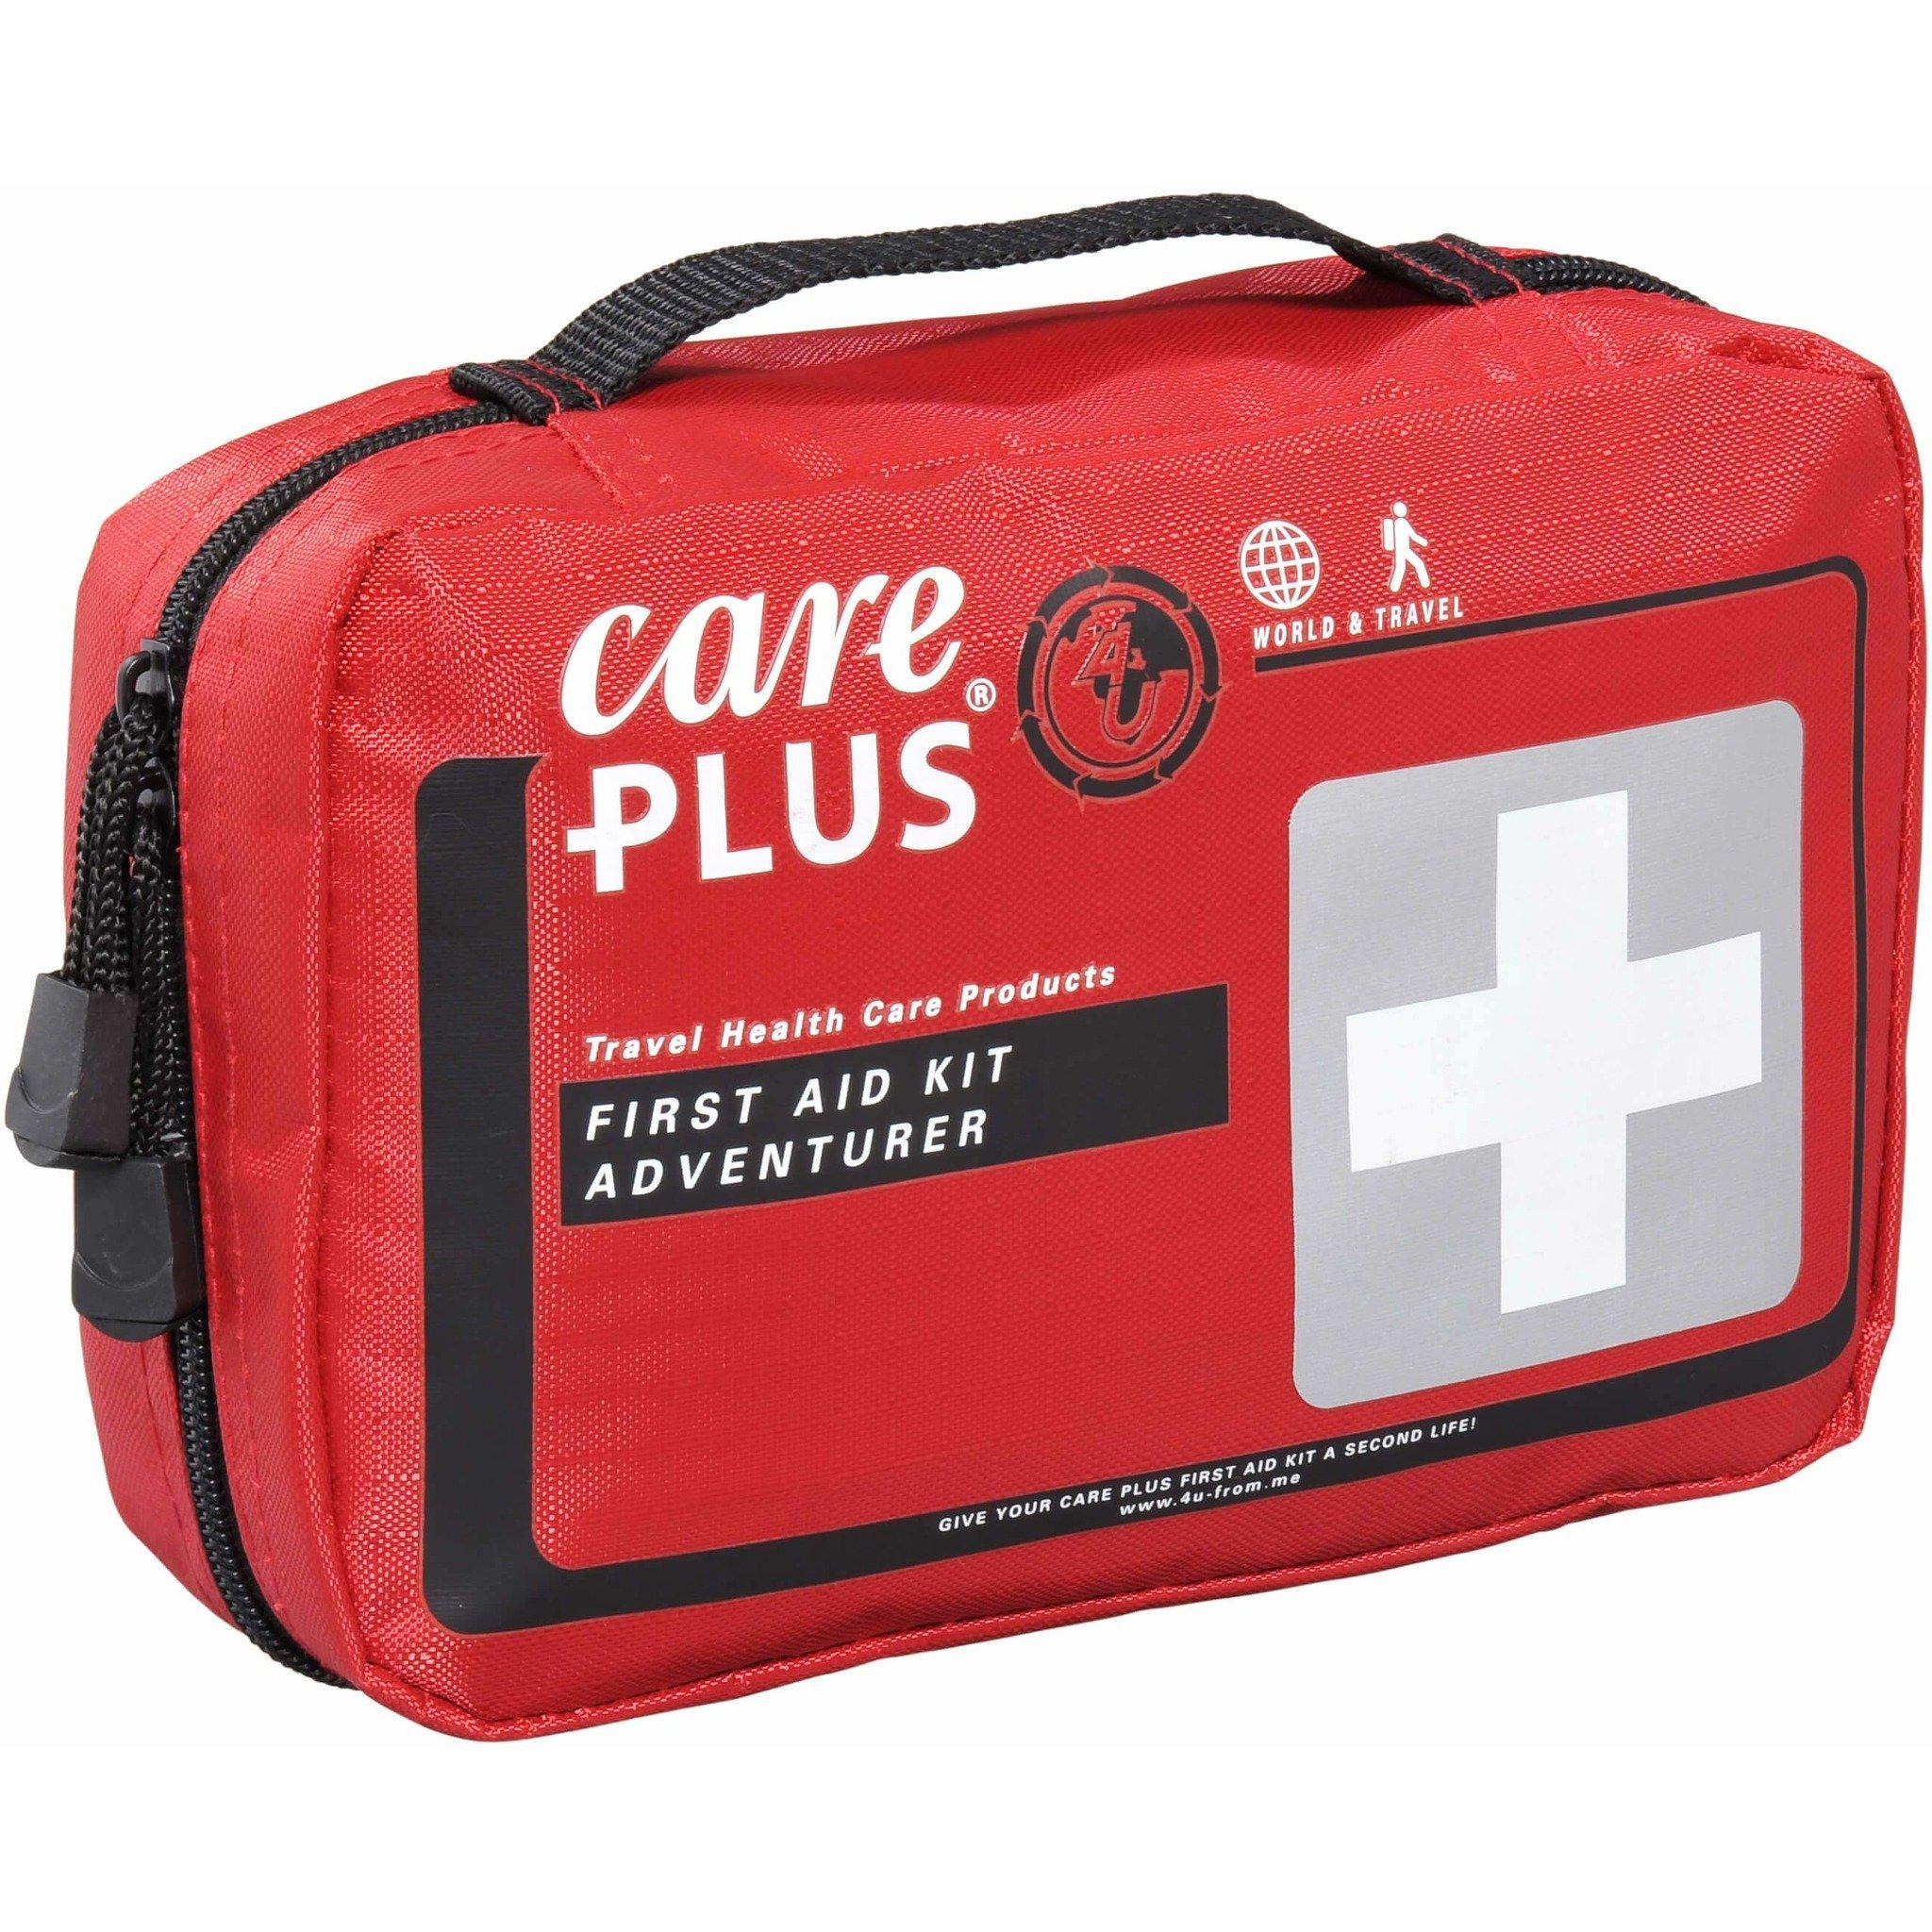 Care Plus First Aid Kit - Adventurer - Needs To Travel